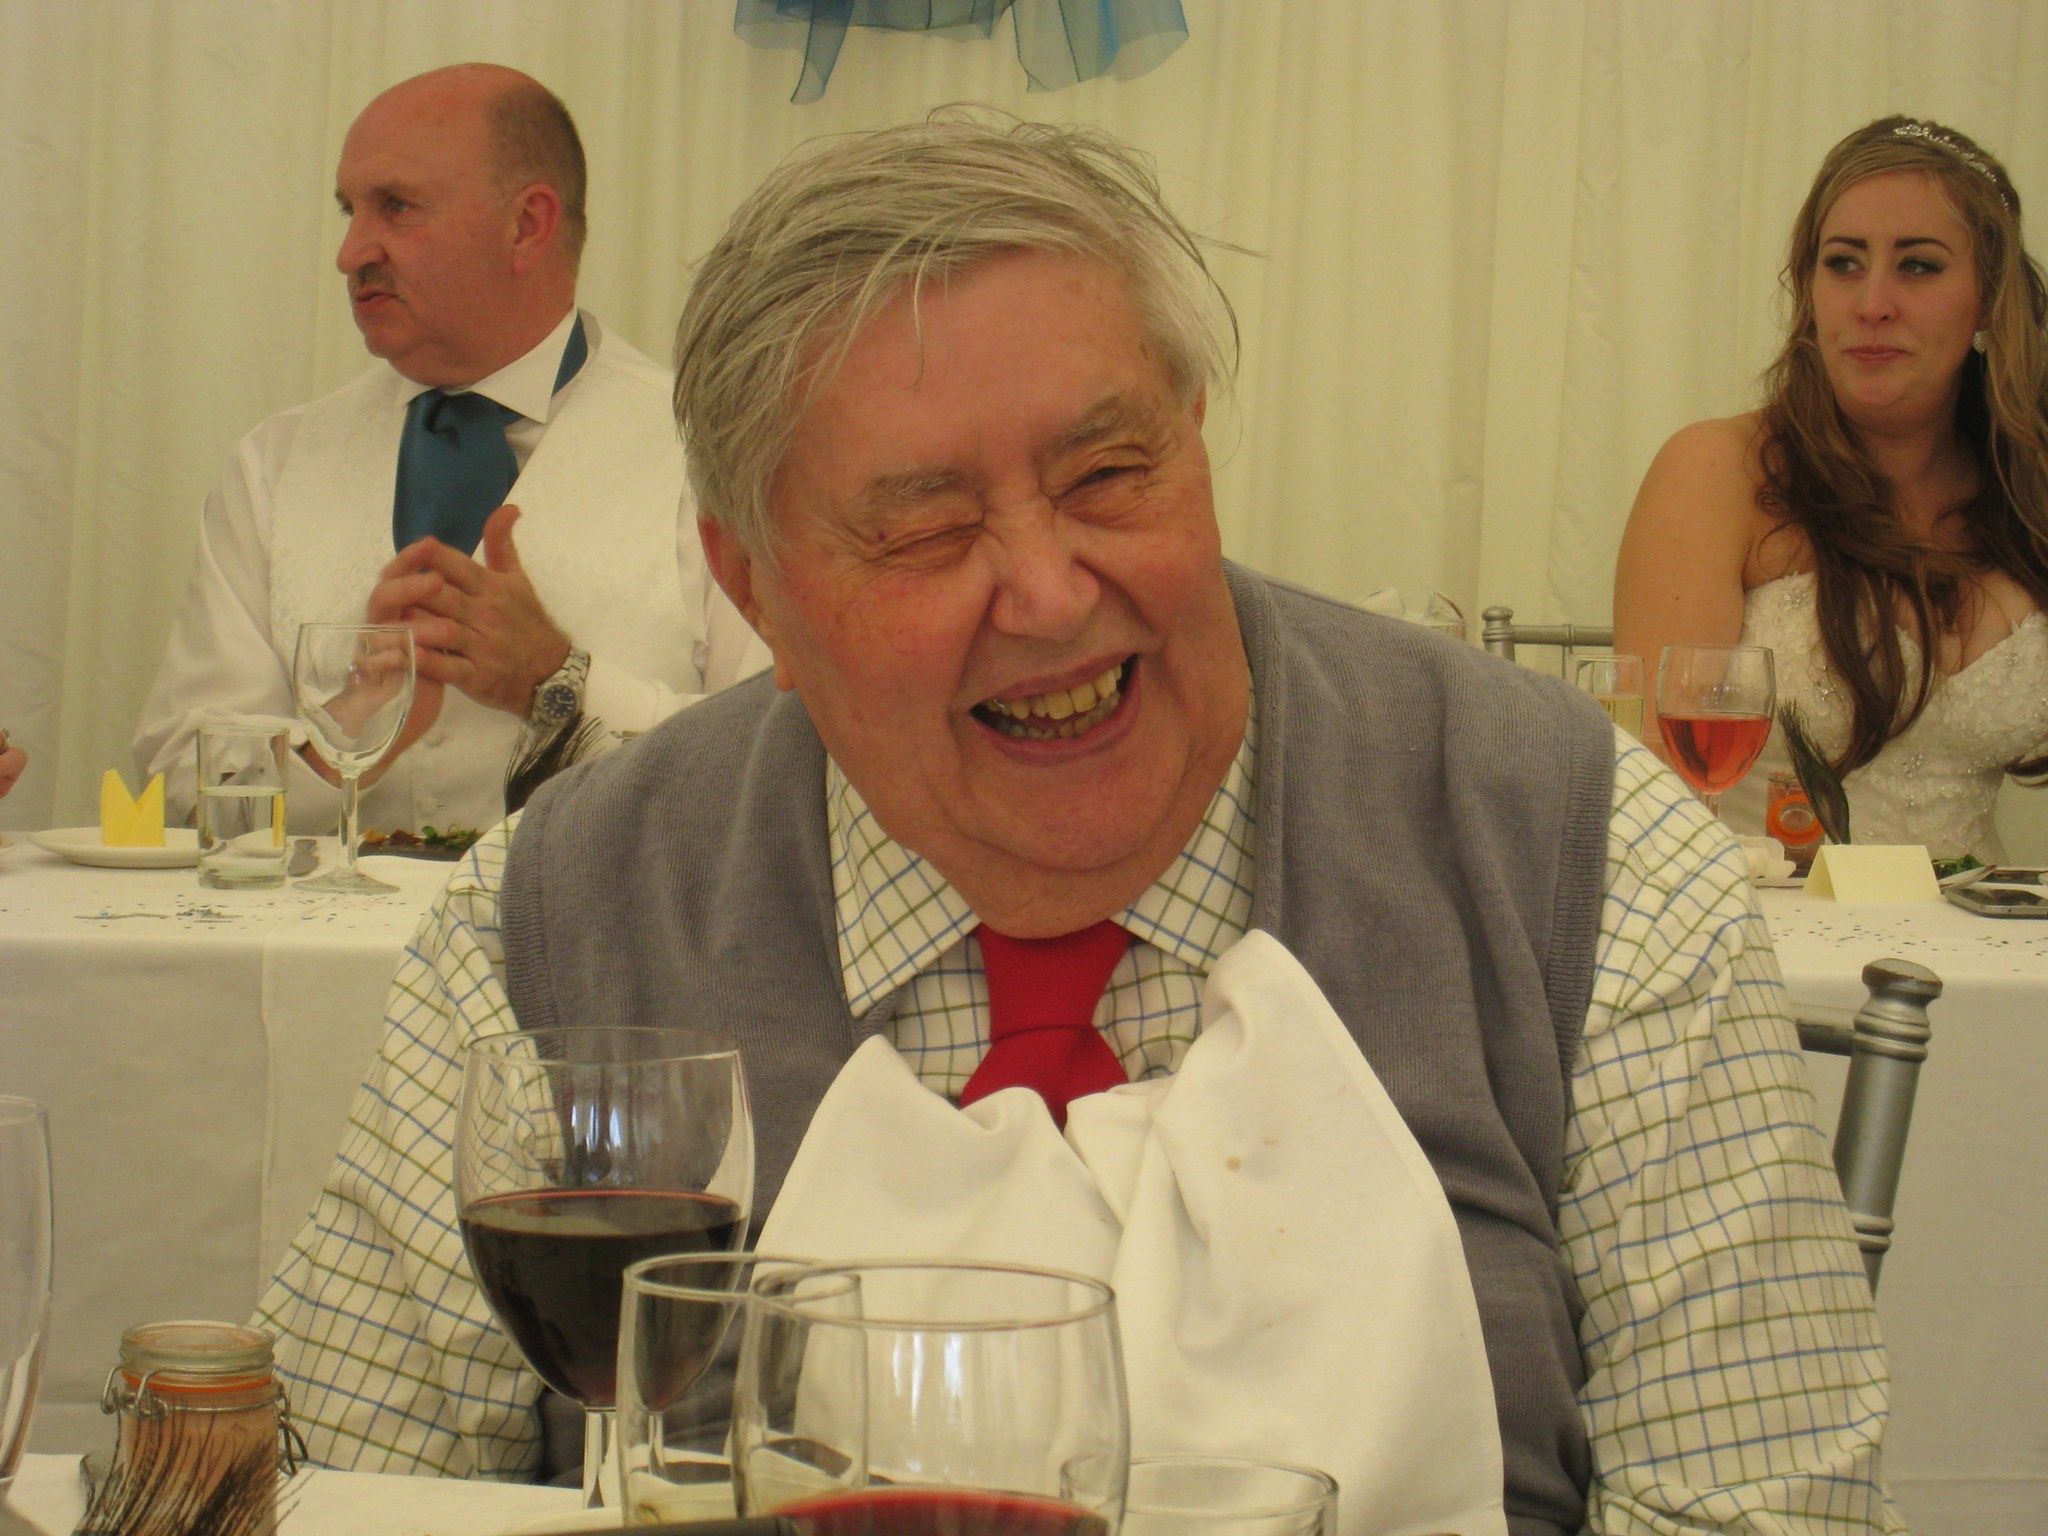 Dad laughing at Becky's wedding